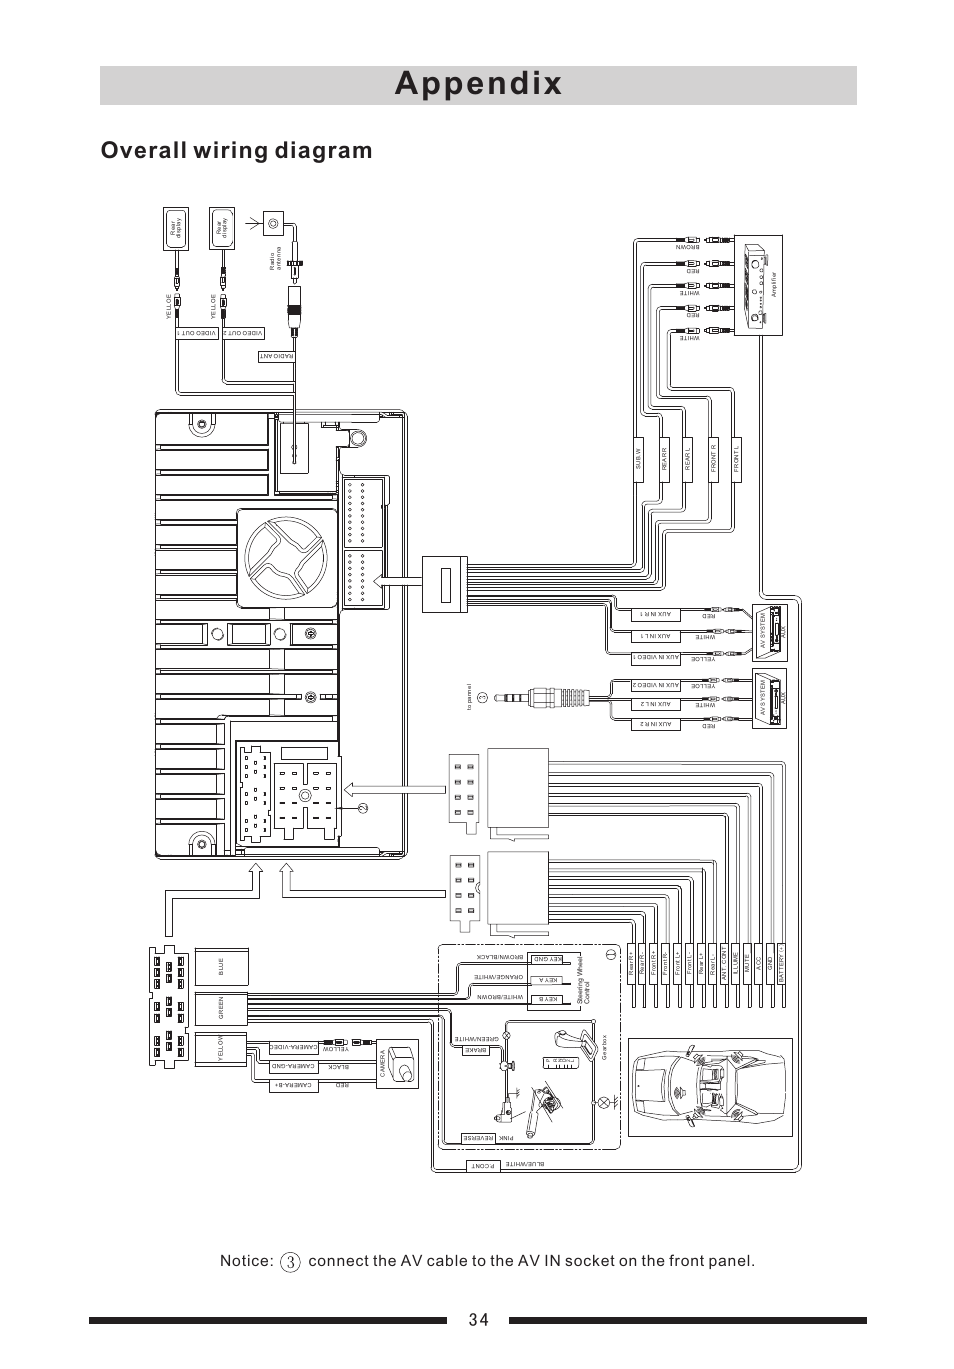 Appendix  Overall Wiring Diagram